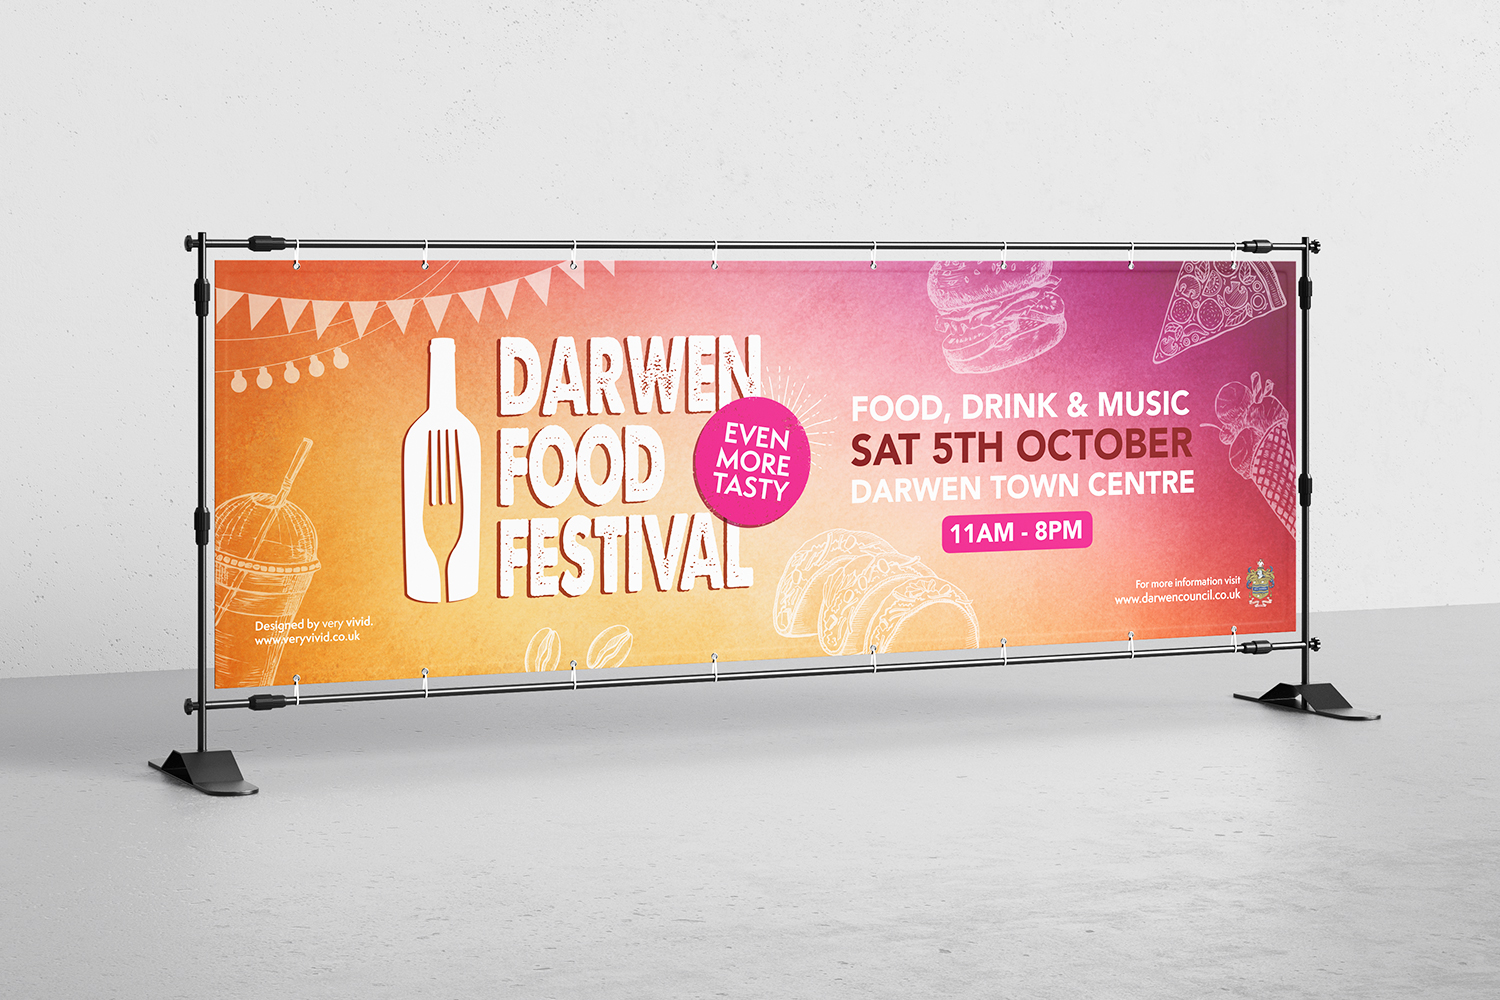 Darwen Food Festival 2019 Artwork & Designs